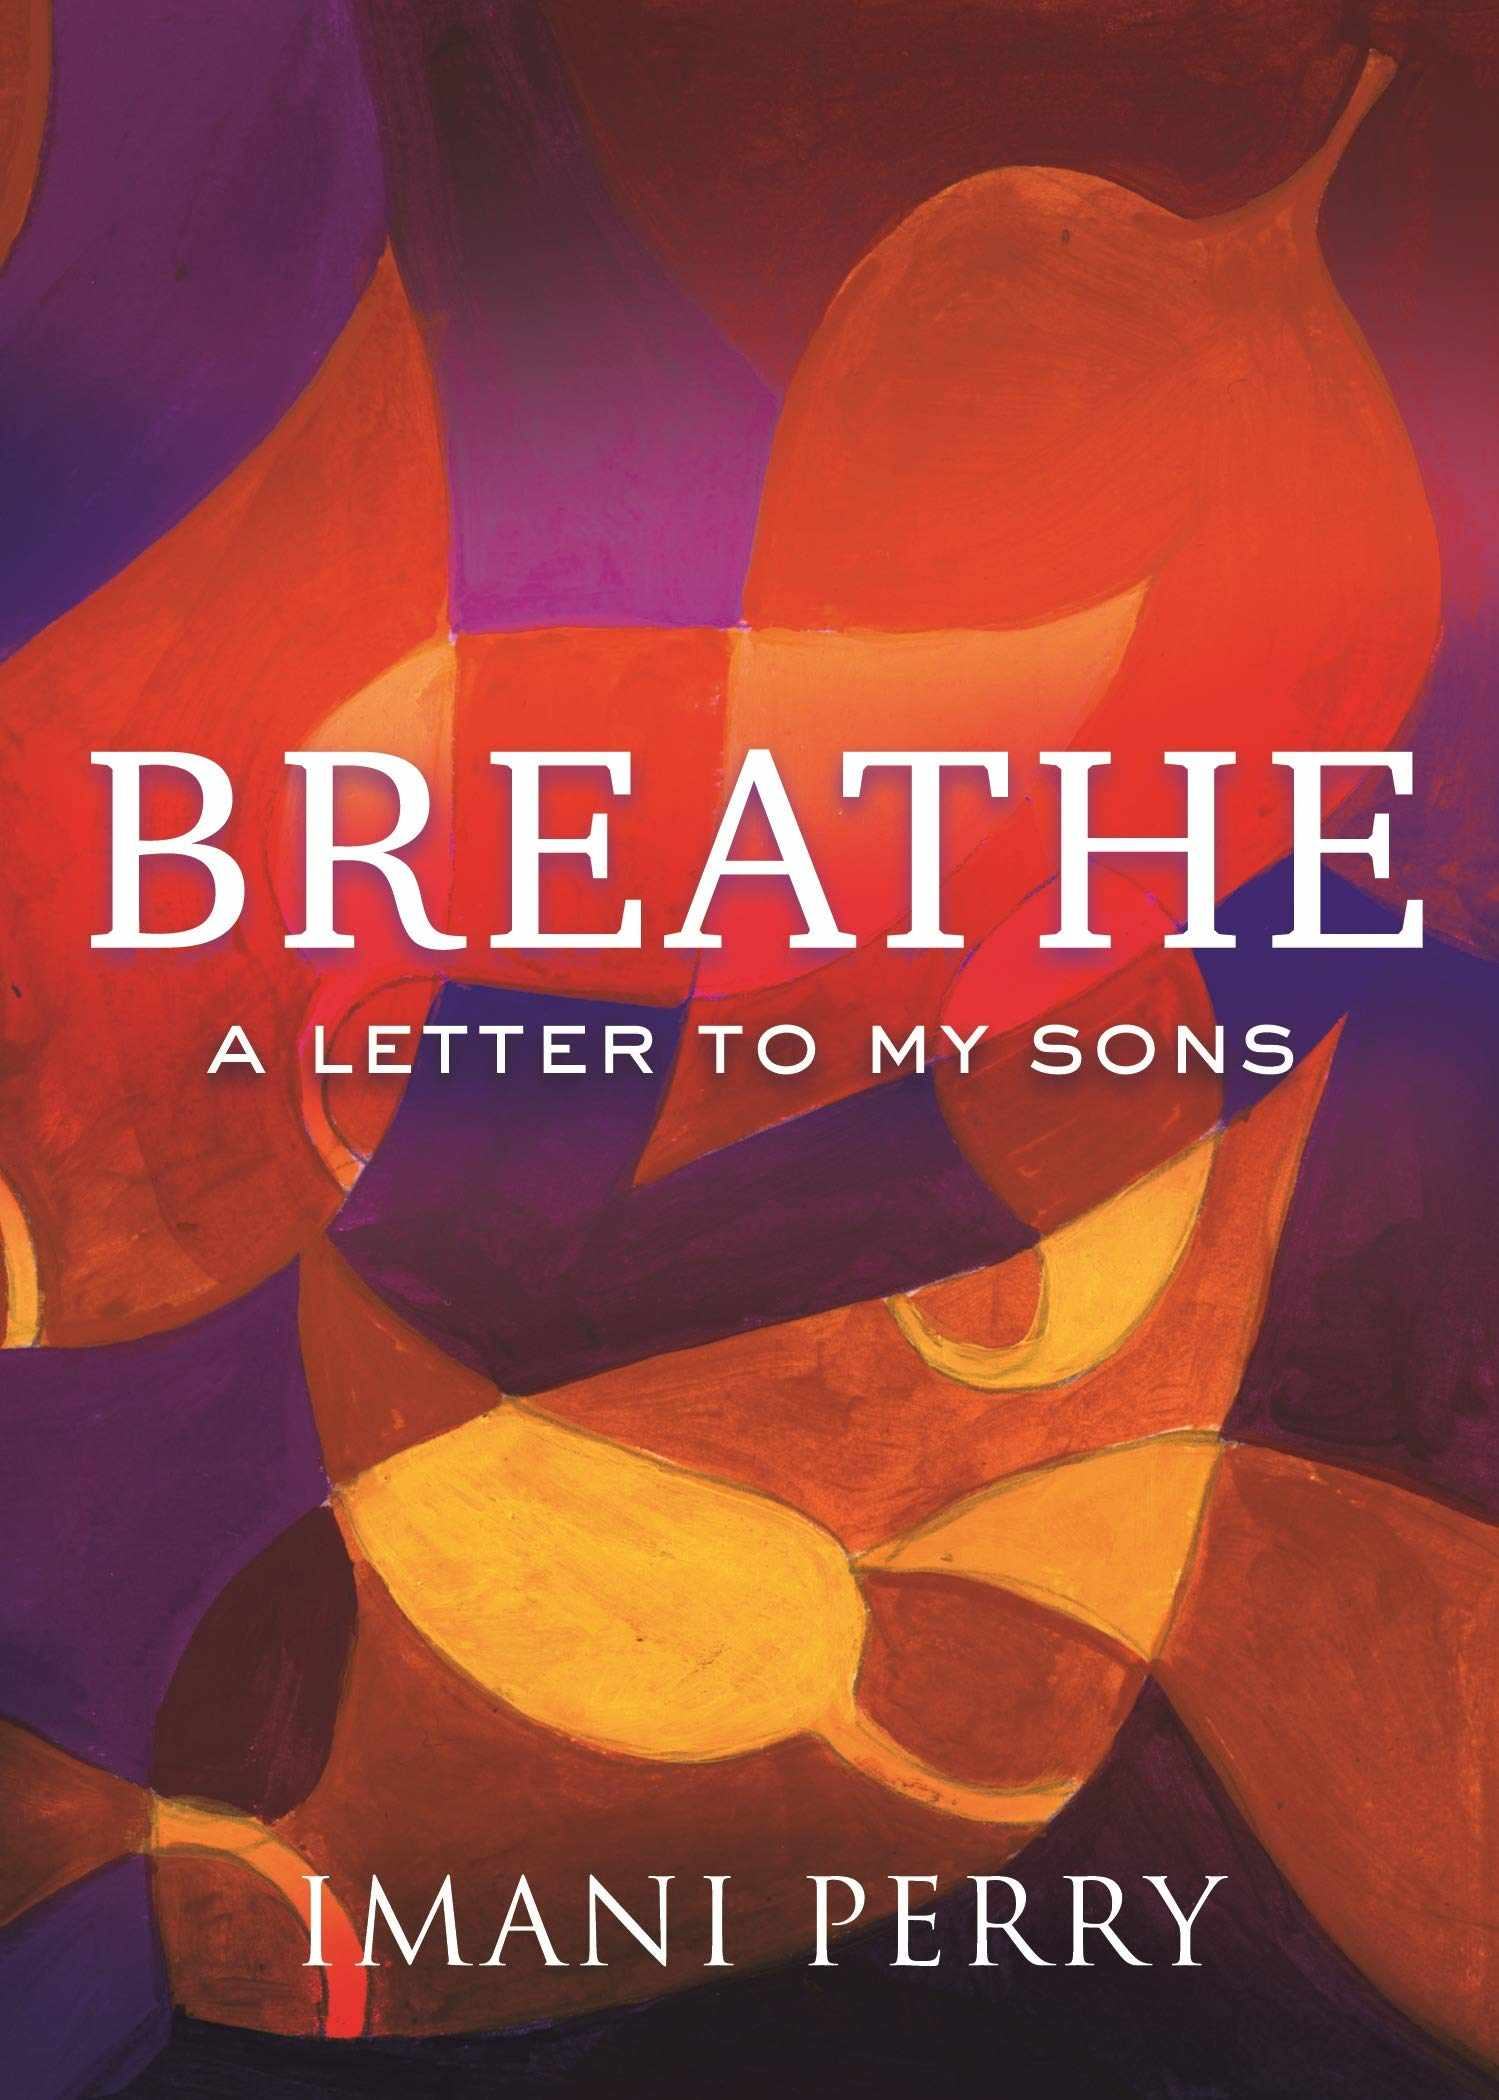 Breathe: A Letter to My Sons: Amazon.co.uk: Imani Perry ...